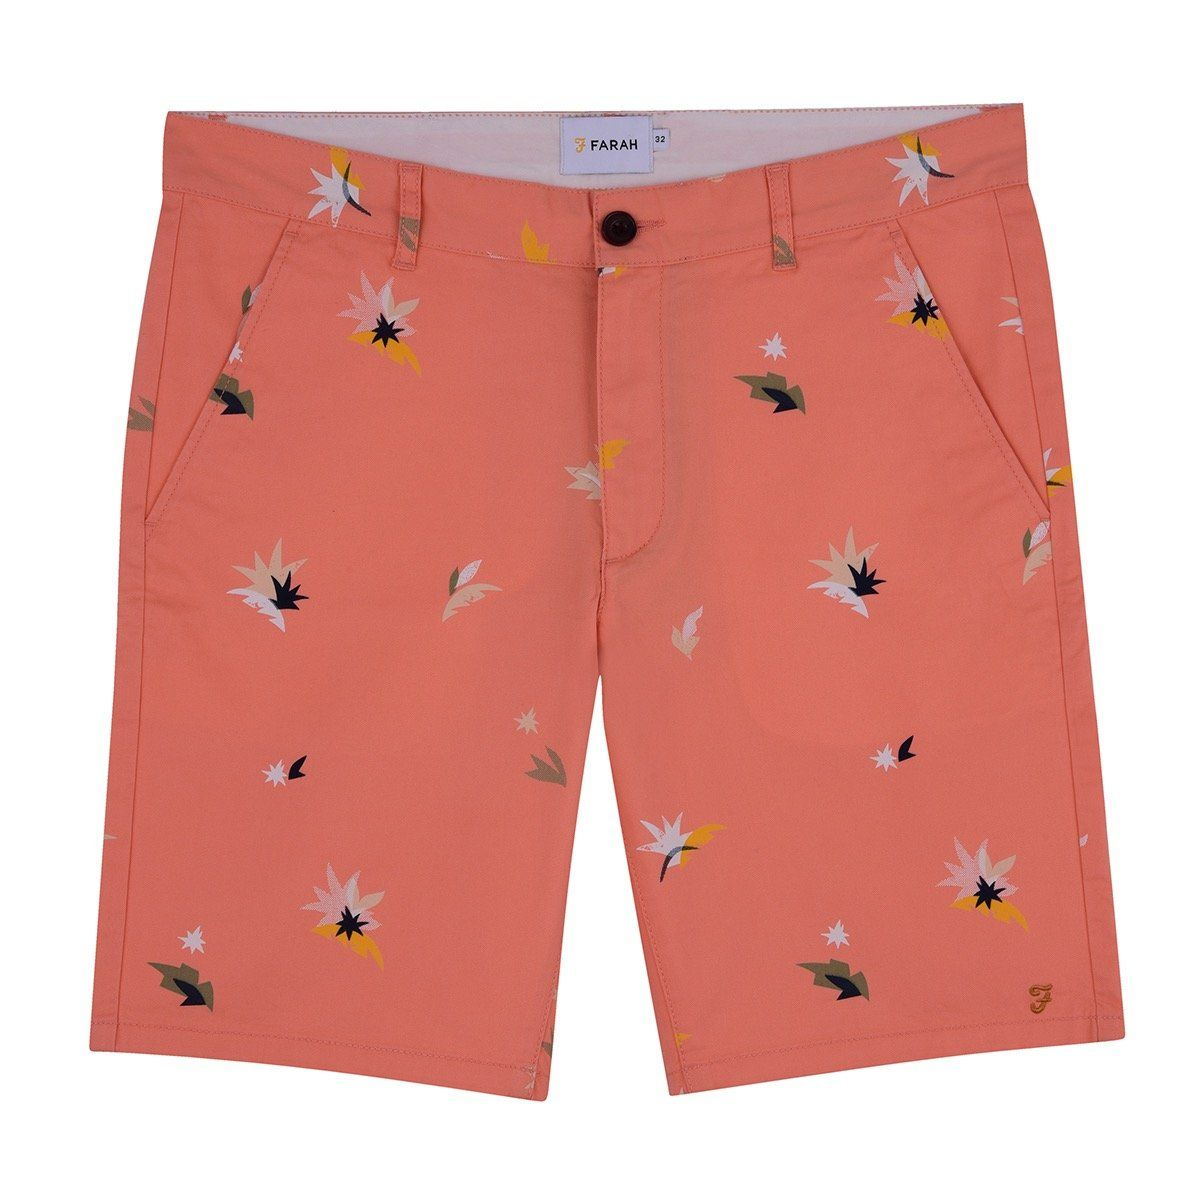 Farah Balearic Print Hawk Chino Shorts - Peach 34'